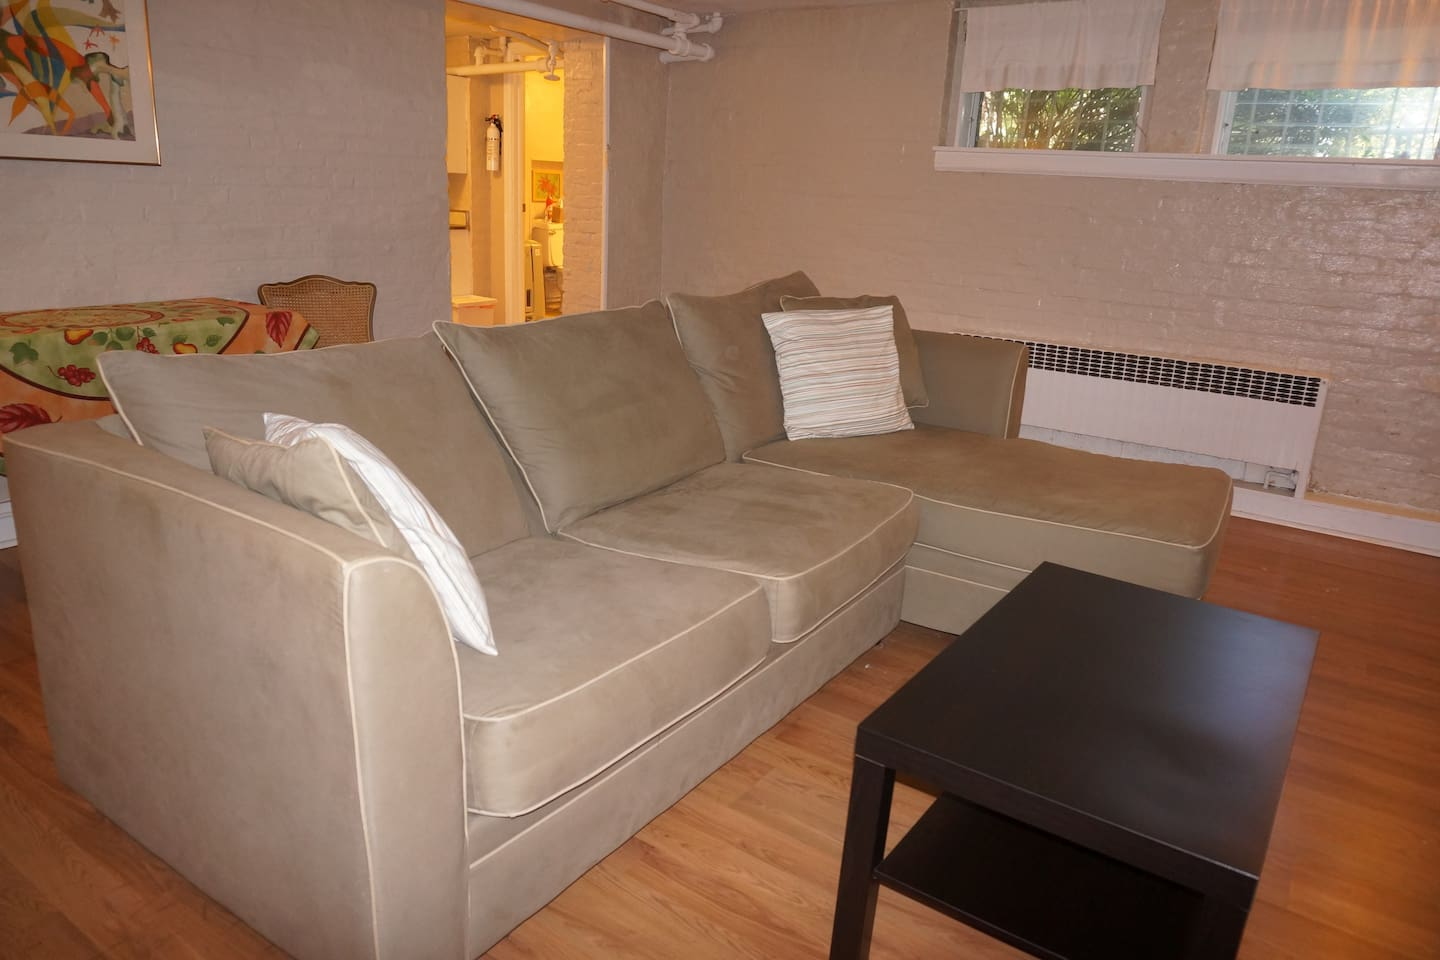 spacious 1 bedroom apartment with private entrance south orange airbnb cool office design train tracks